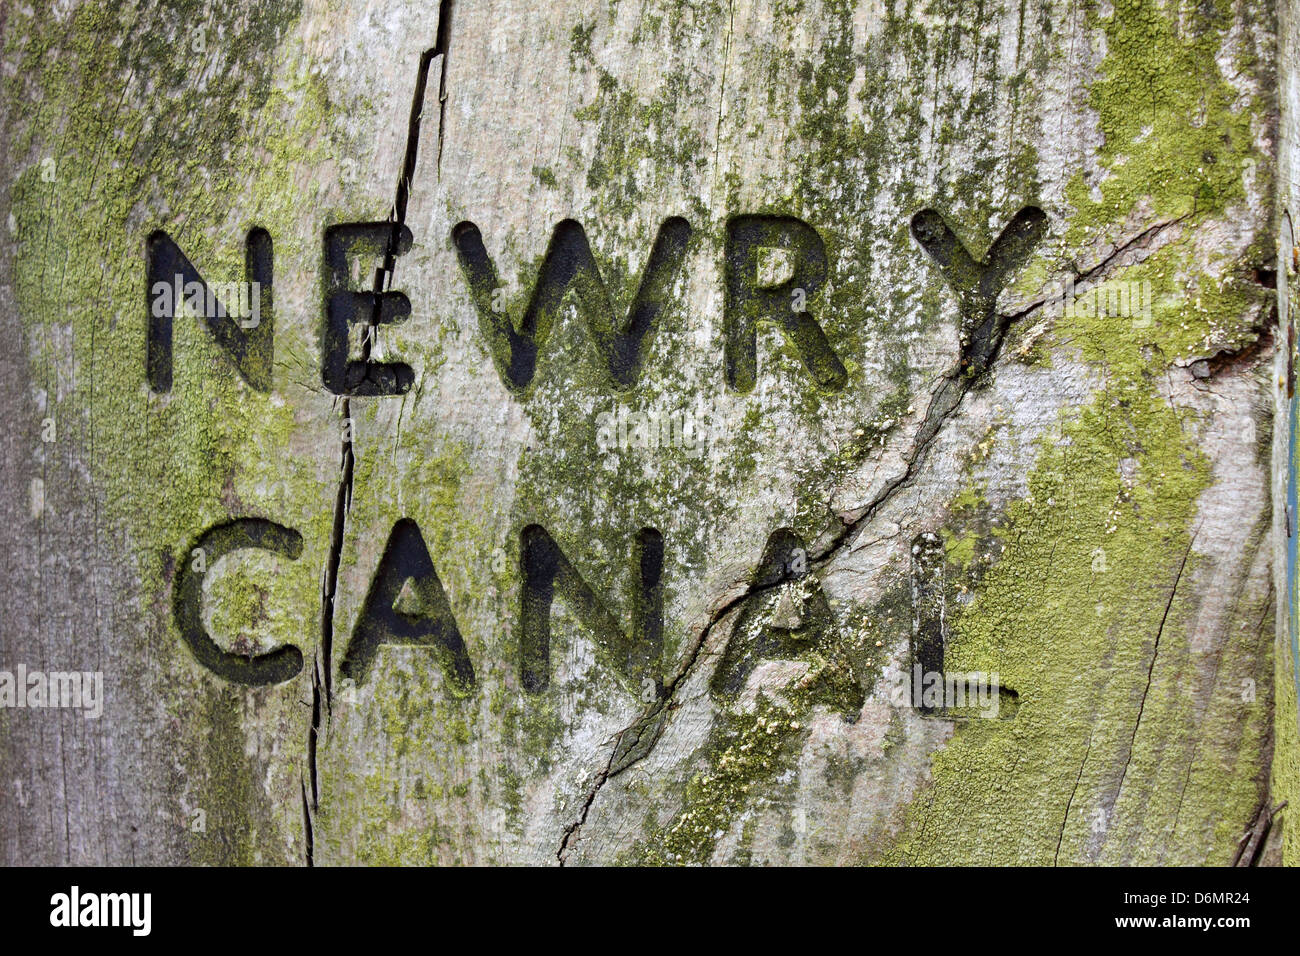 Newry Canal signpost near Scarva, Northern Ireland - Stock Image